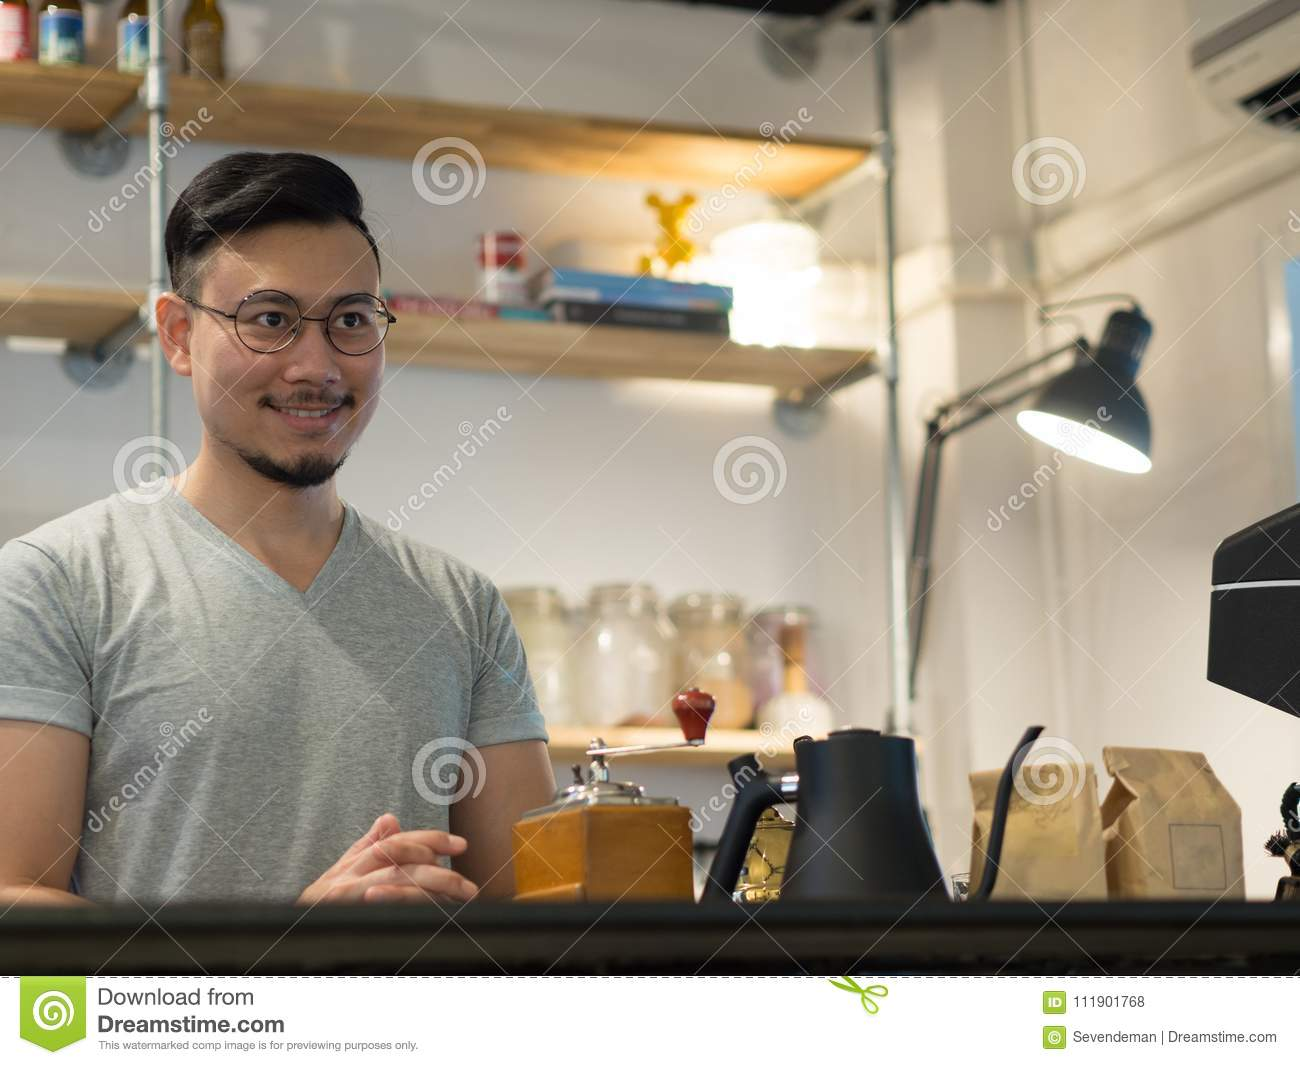 Man being barista and own a small coffee shop.